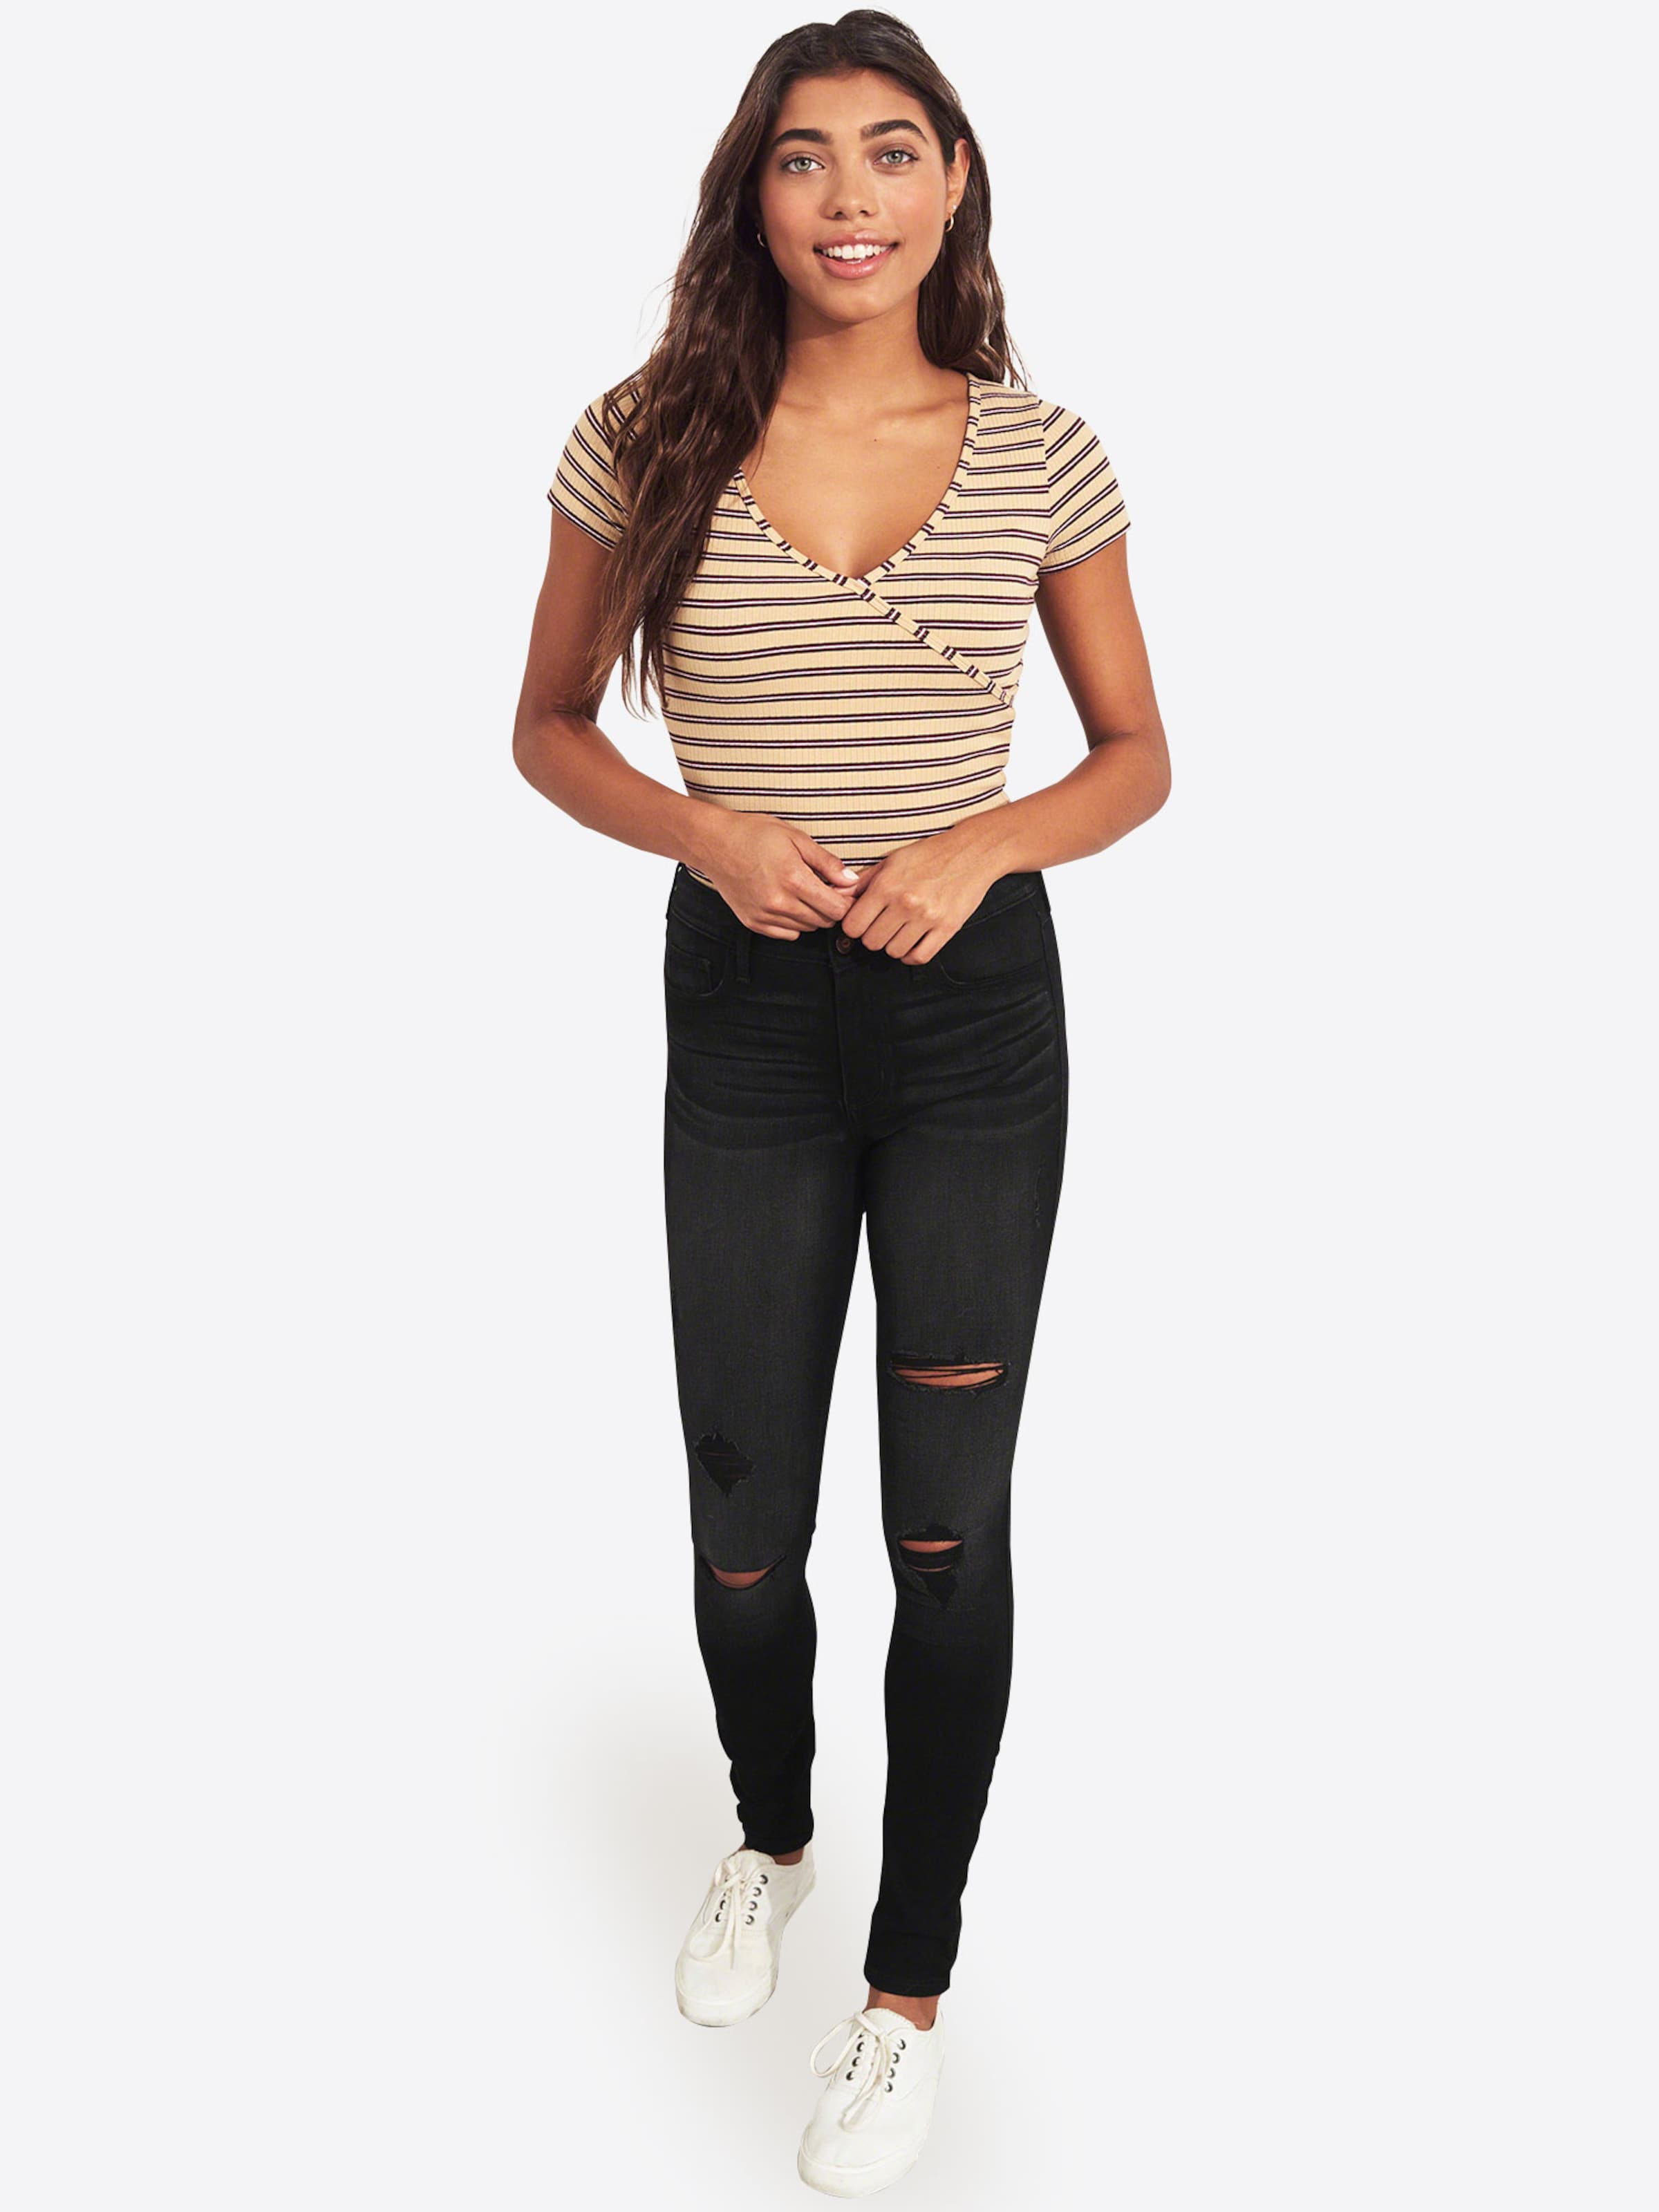 Dest ' Hollister 'bts17 Black In wash Jeans Denim lFKT1Jc